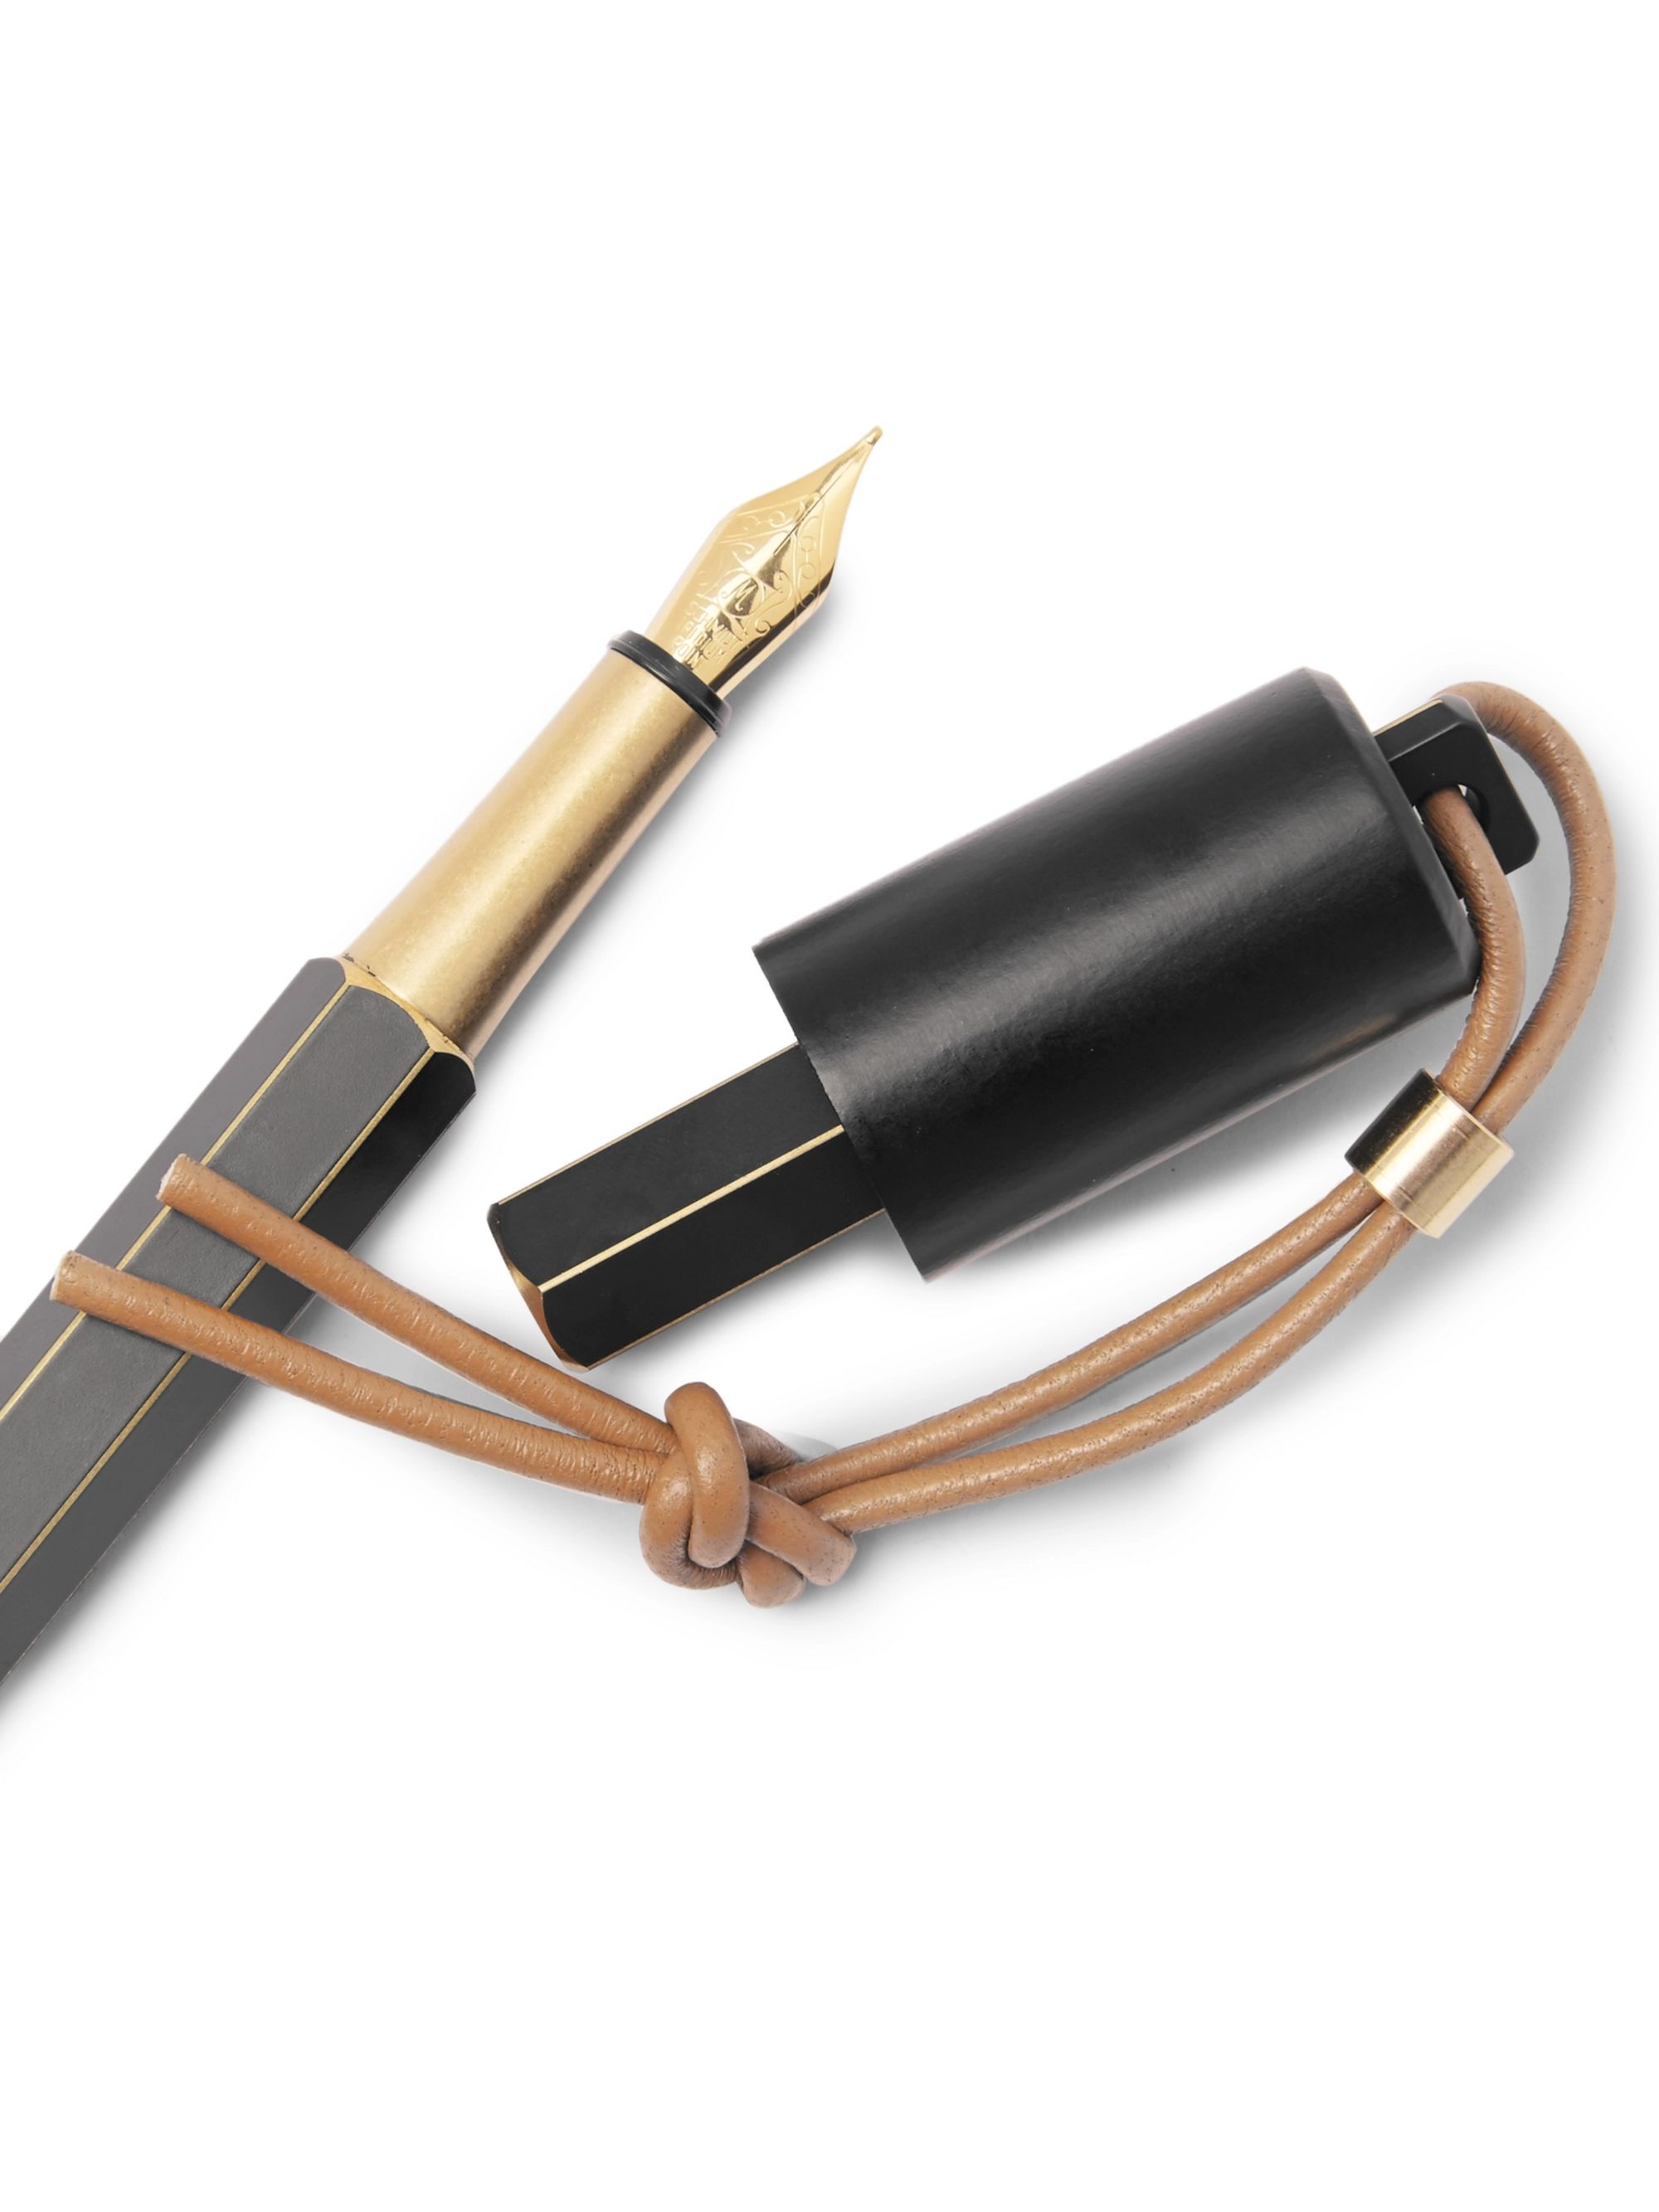 Ystudio Portable Brass and Copper Fountain Pen and Holder